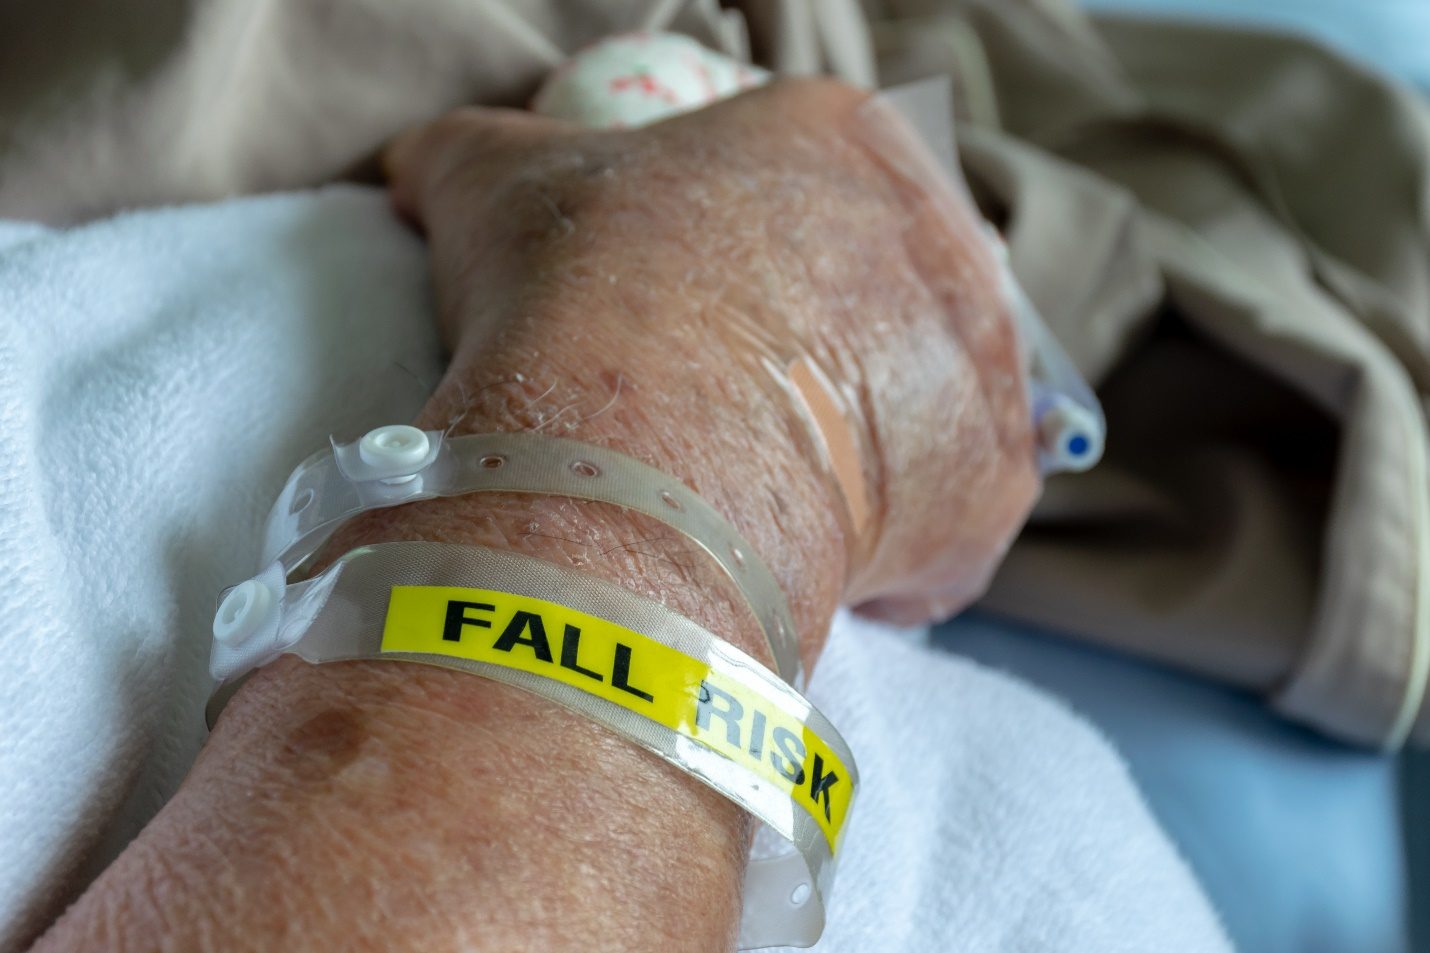 Are Nursing Homes Responsible for Falls?